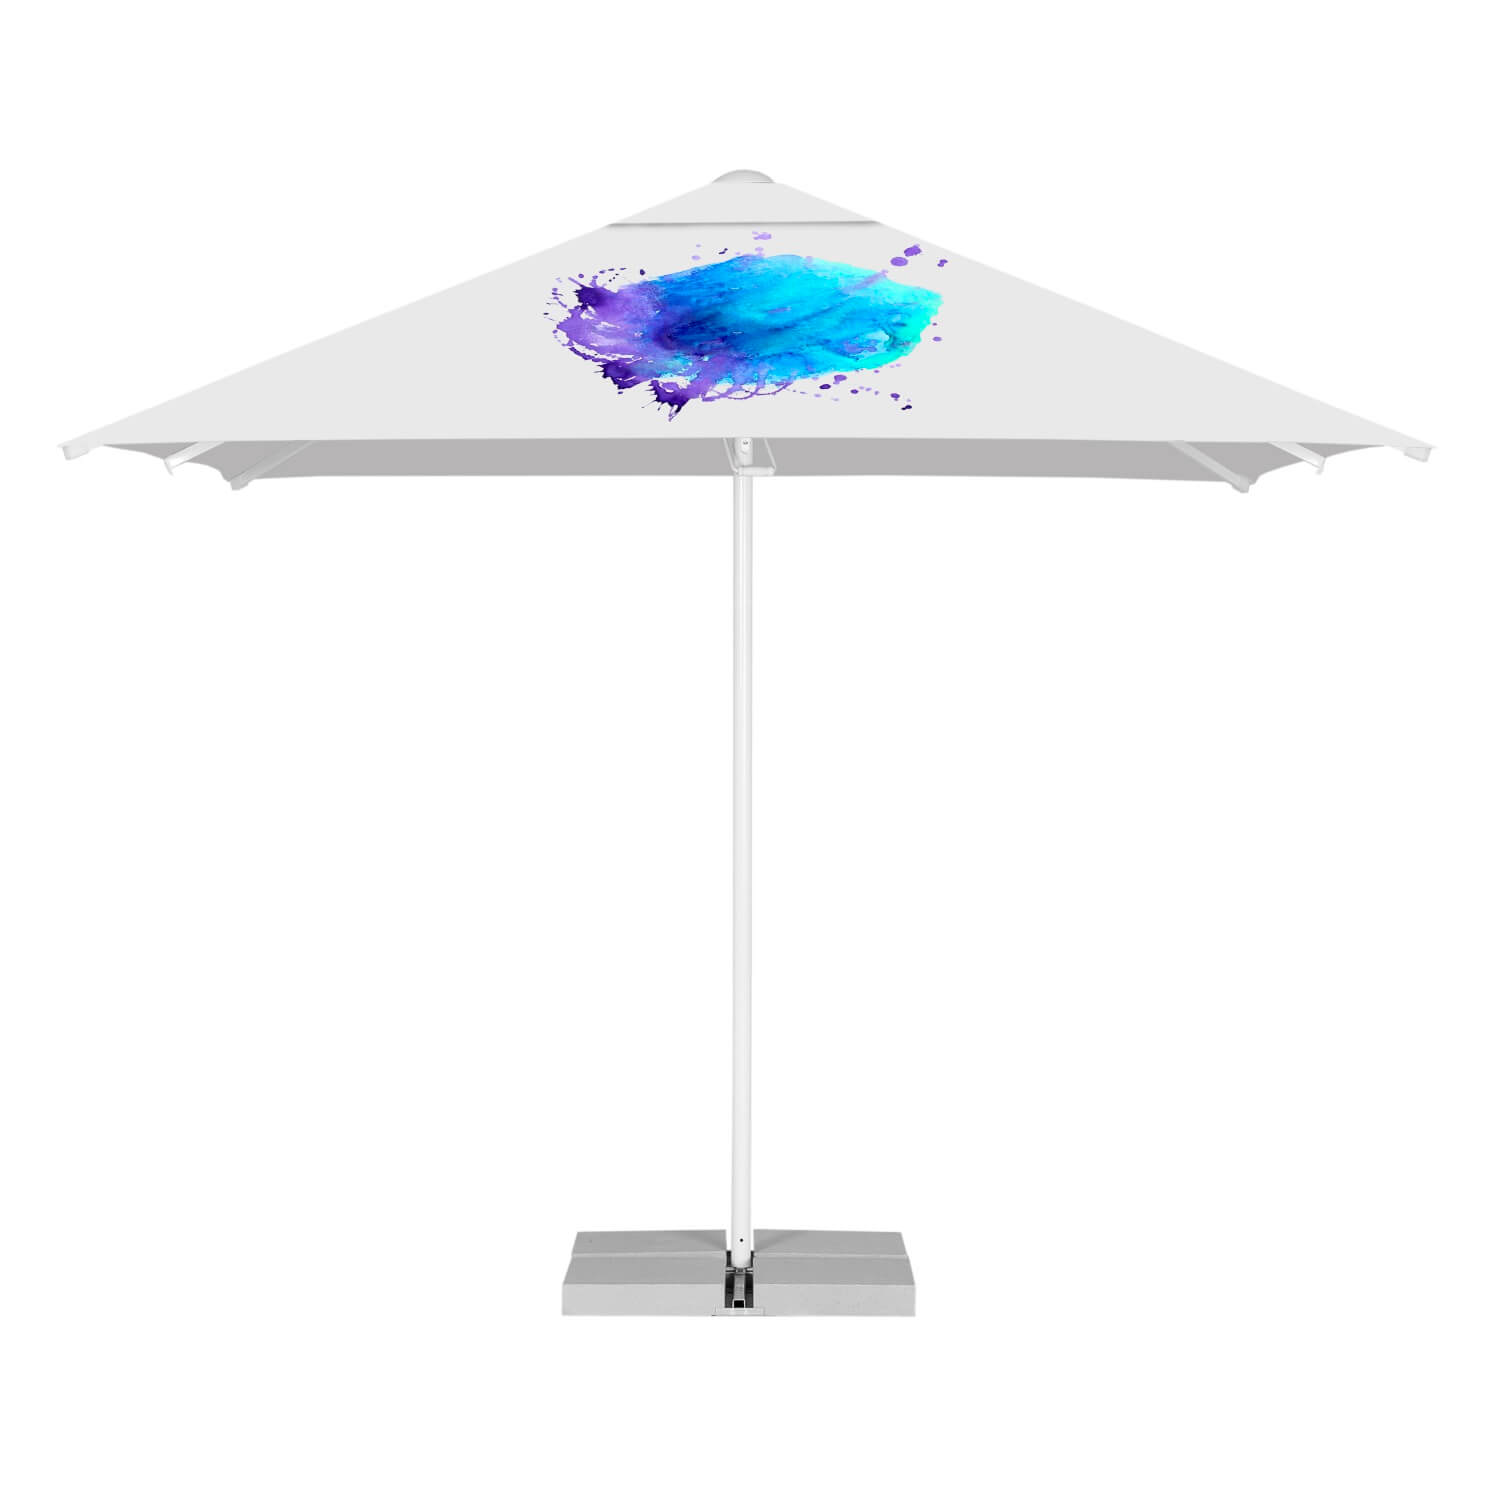 17. Easy Up Parasol Quadratisch 3m